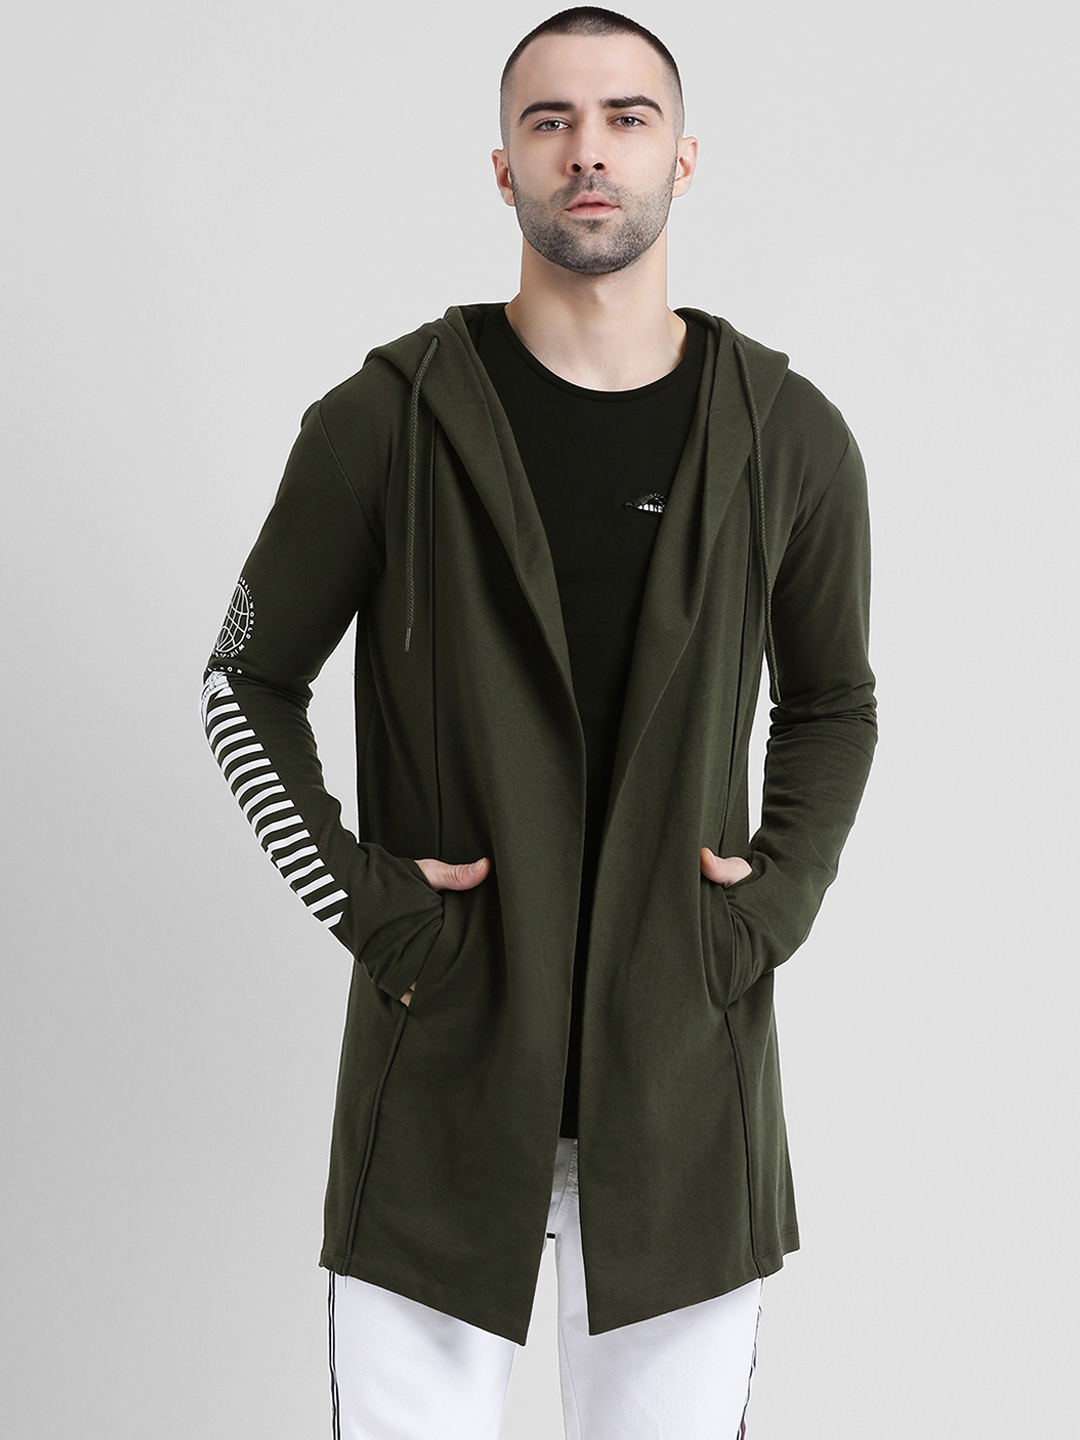 Tinted Men Olive Green Solid Open Front Jacket